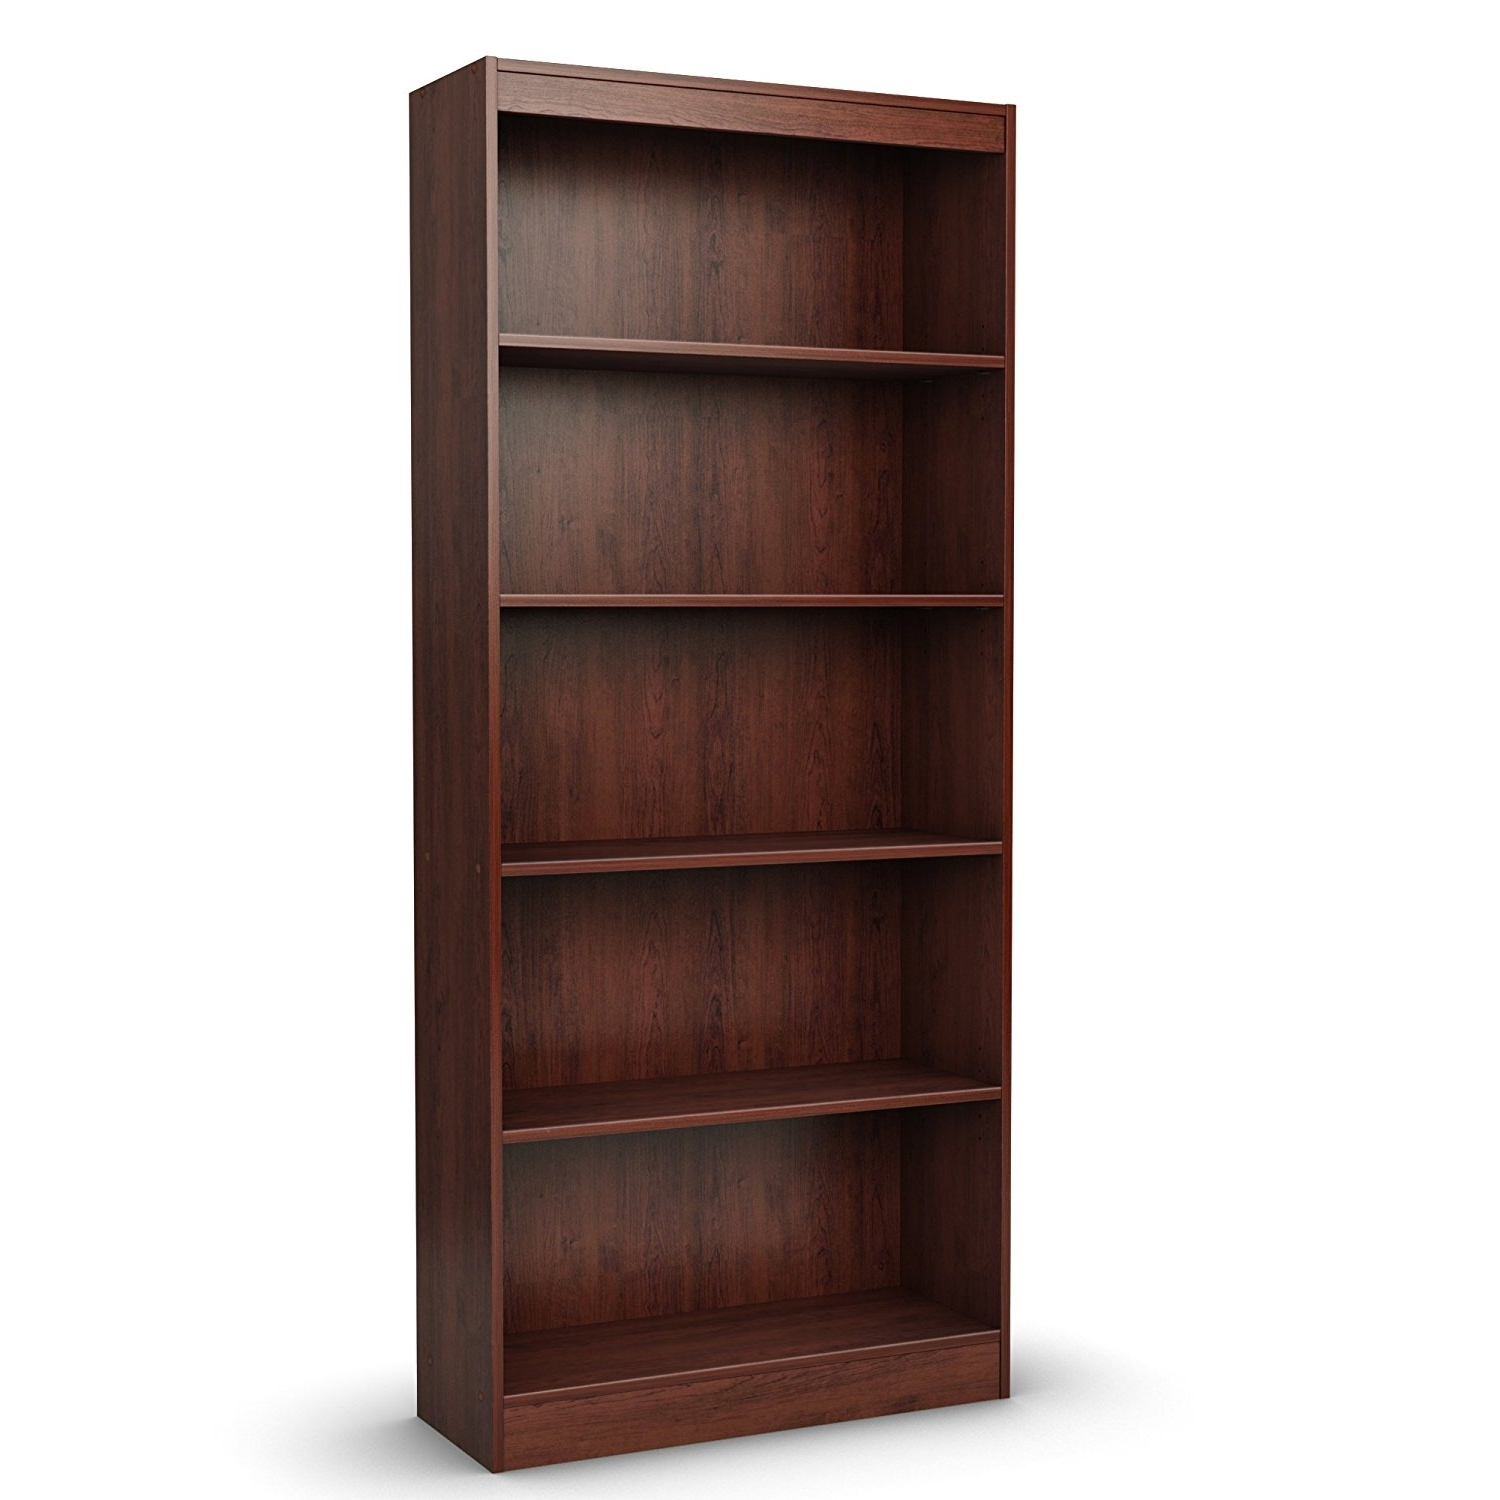 Fashionable Amazon: South Shore Axess Collection 5 Shelf Bookcase, Royal With 5 Shelf Bookcases (View 3 of 15)